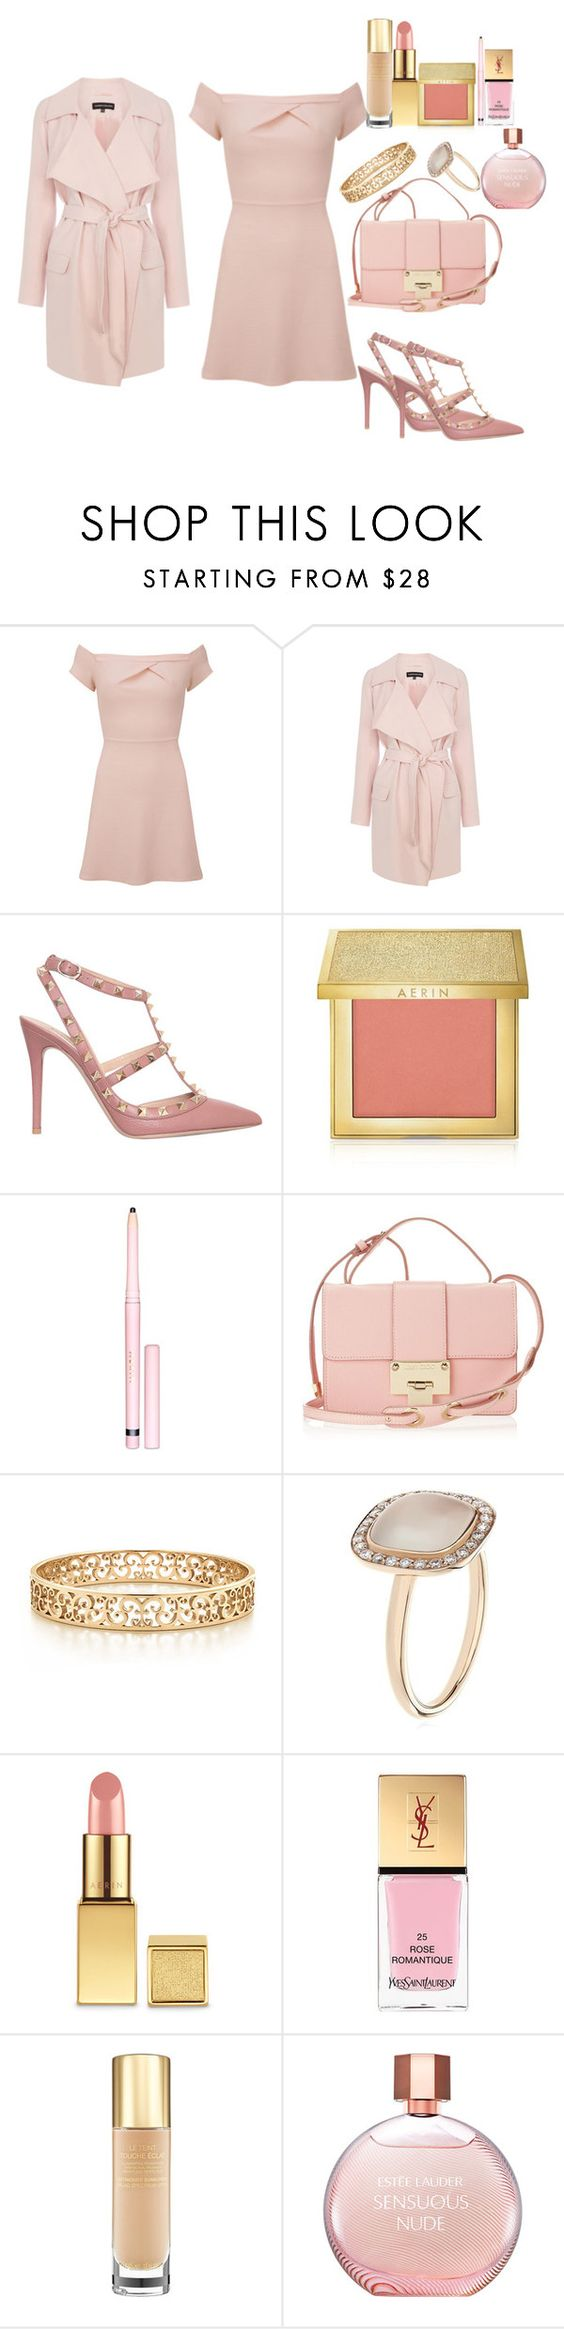 """""""Date Night!"""" by fabuliciousfi ❤ liked on Polyvore featuring Love, Warehouse, Valentino, AERIN, Jimmy Choo, Tiffany & Co., Astley Clarke, Yves Saint Laurent, Estée Lauder and DateNight"""